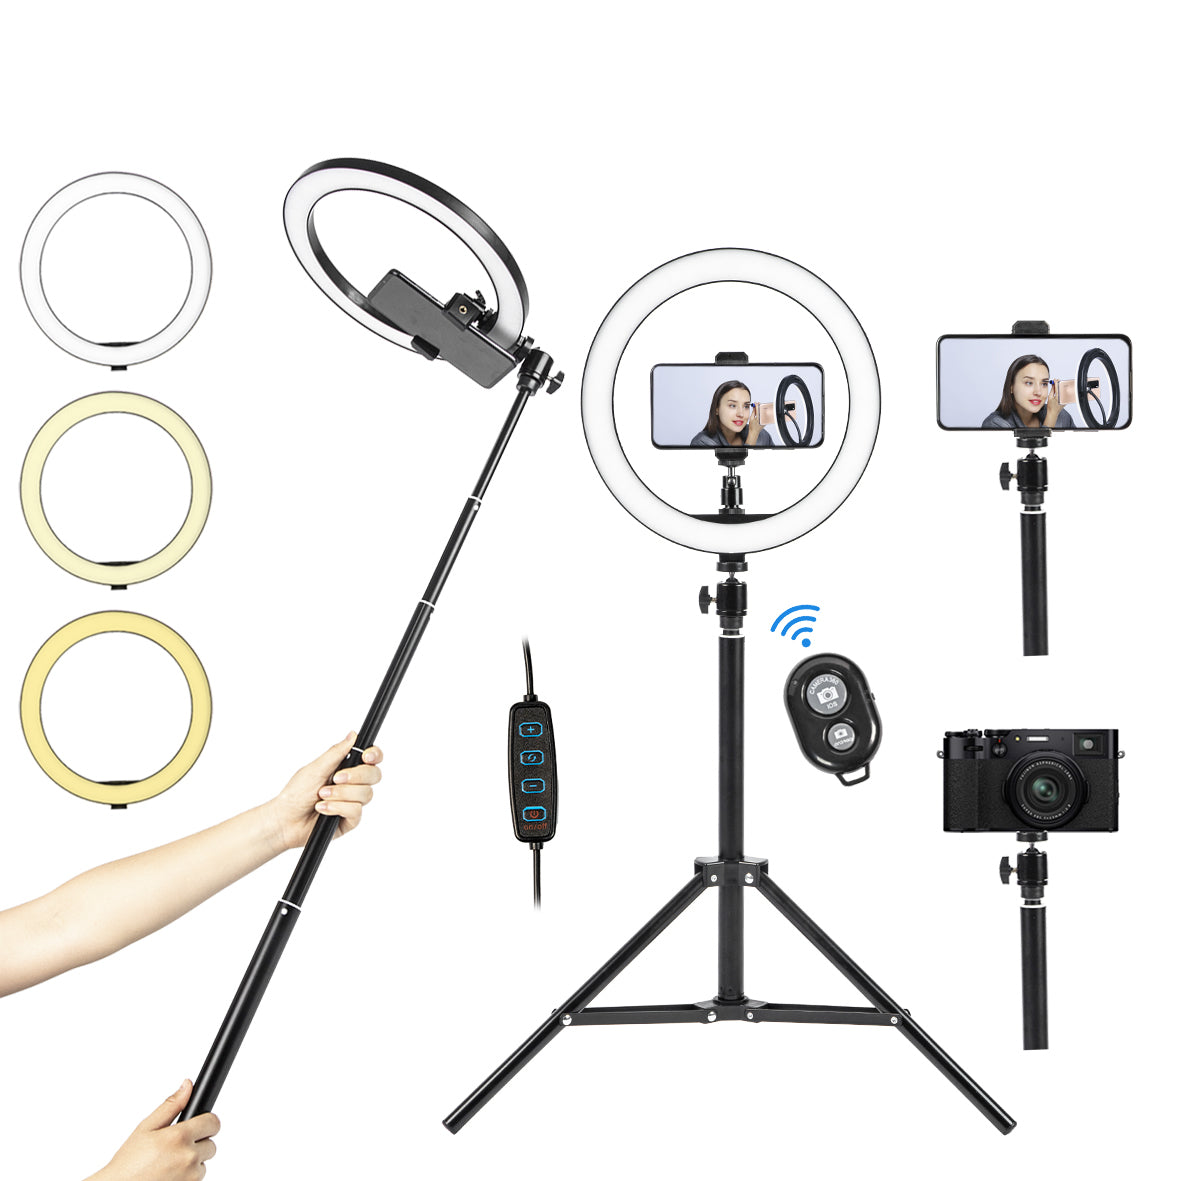 "97-7210 10"" LED Ring Light with Tripod Stand and Selfie Stick"